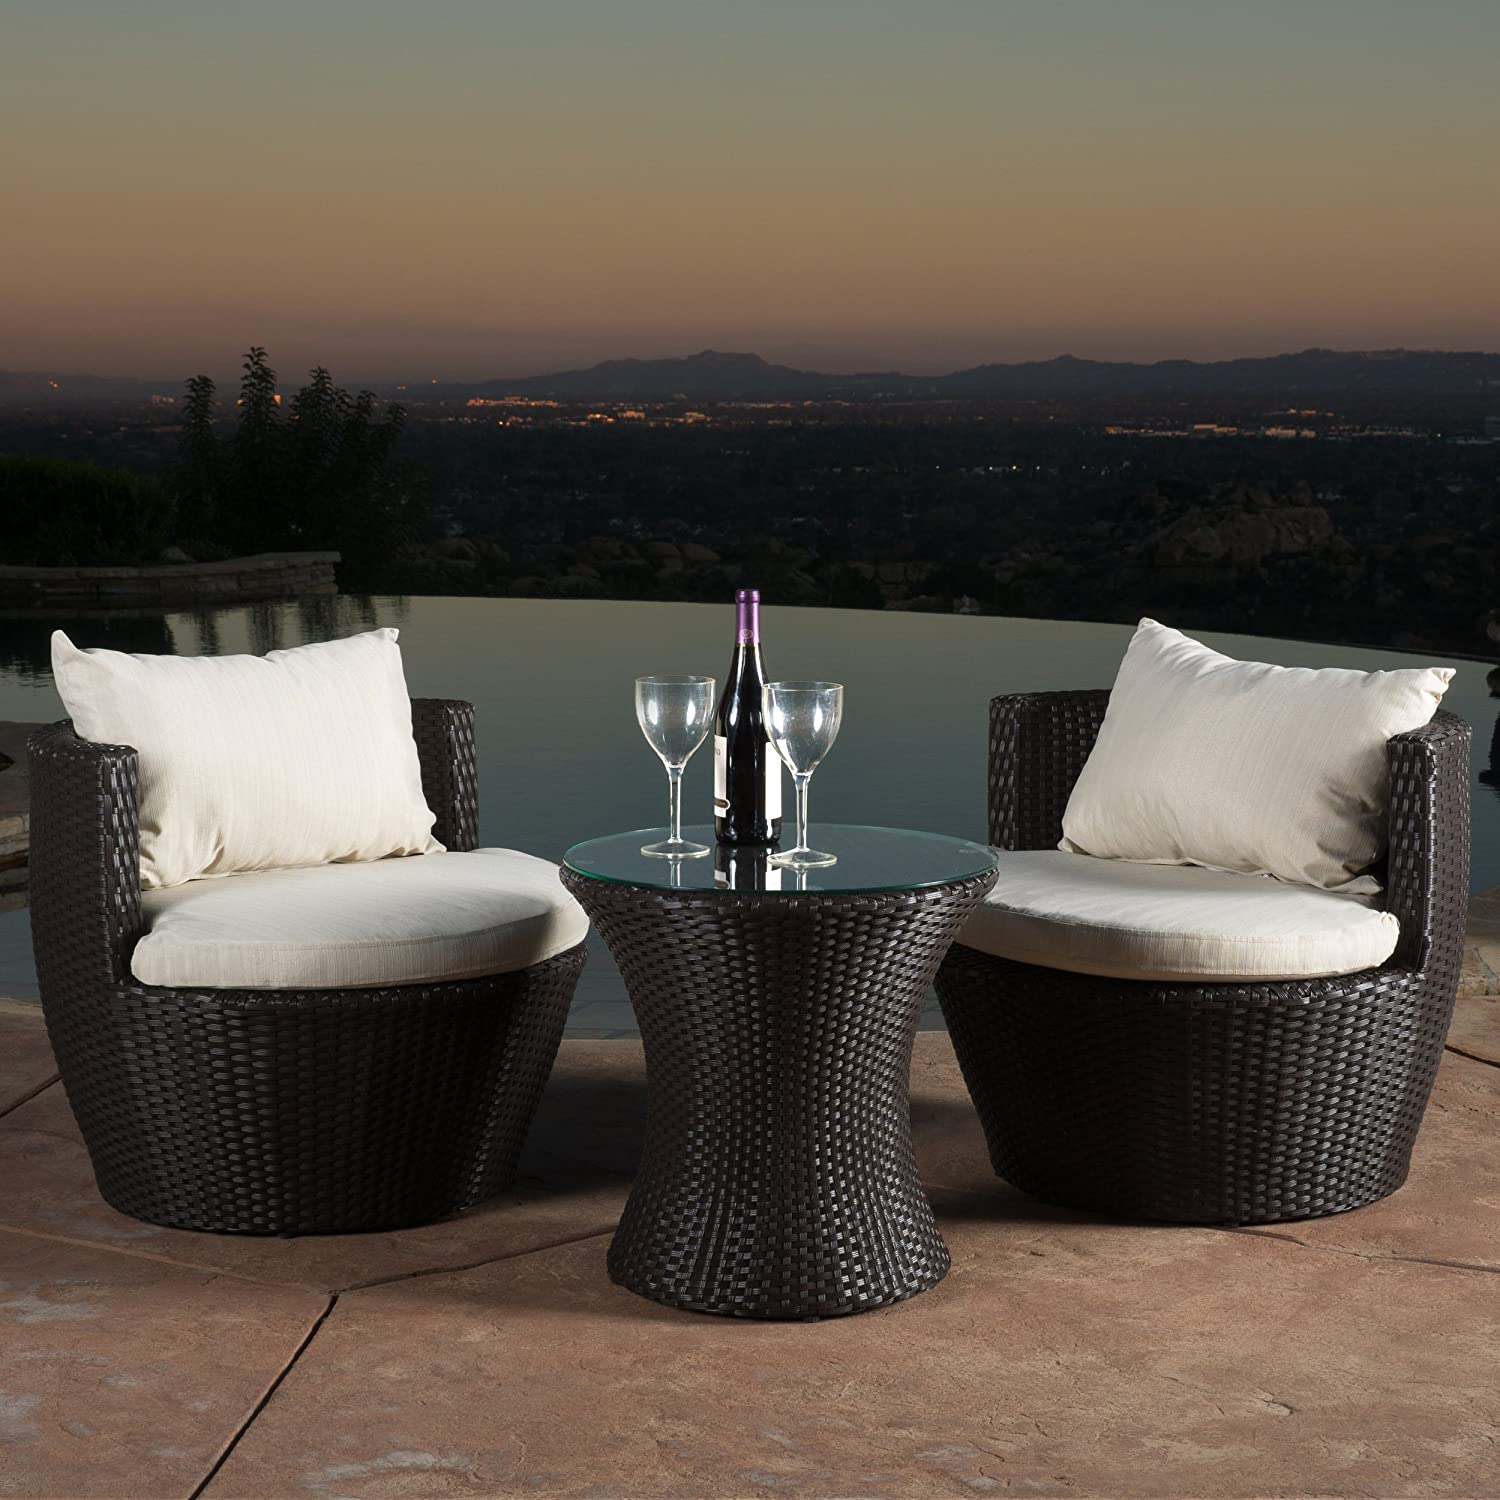 Amazon.com  Christopher Knight Home 296323 Kyoto 3 Piece Chat Set  Garden u0026 Outdoor & Amazon.com : Christopher Knight Home 296323 Kyoto 3 Piece Chat Set ...